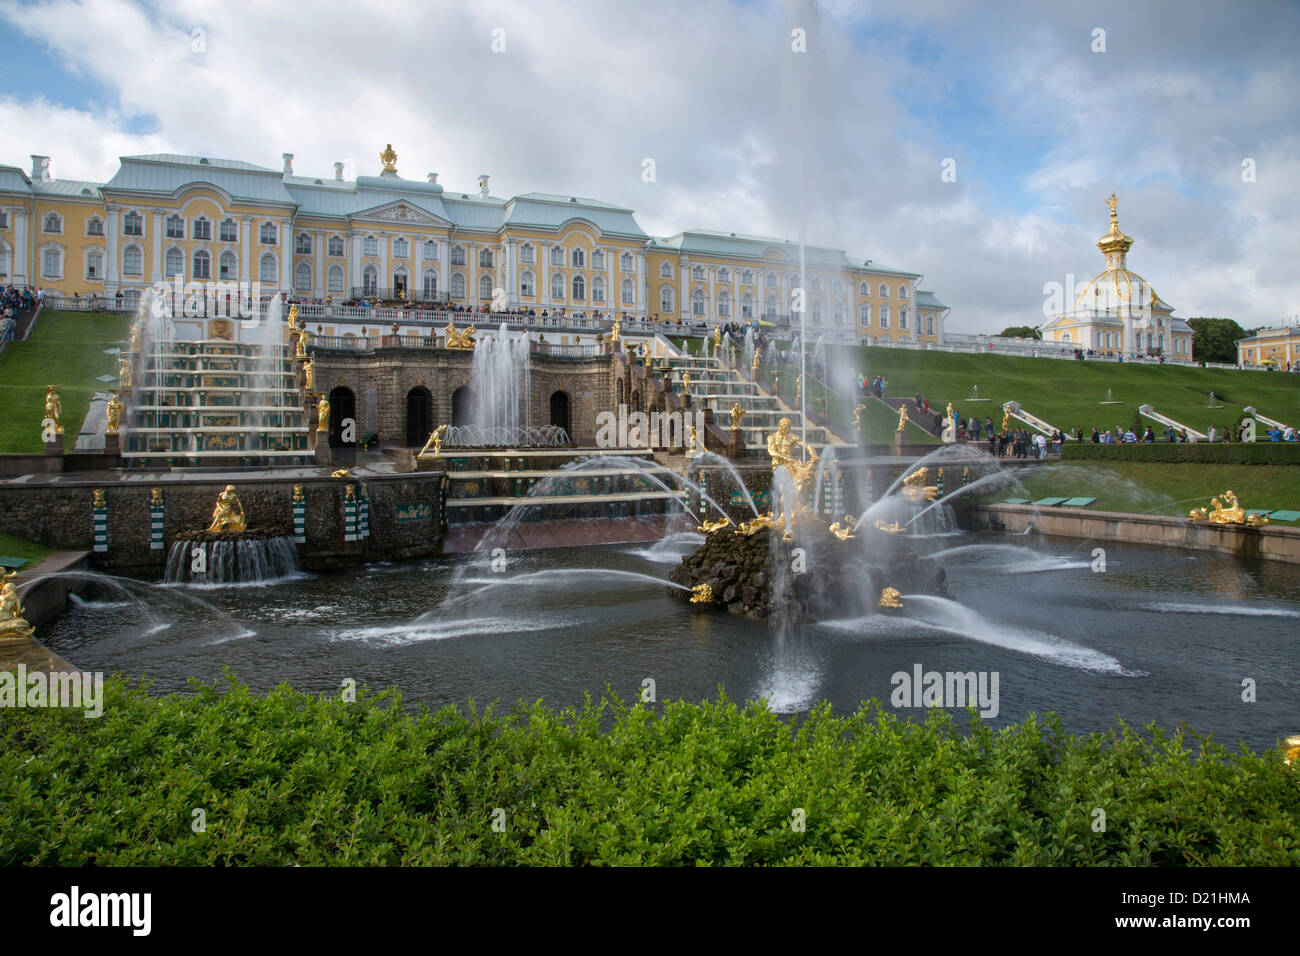 Grand Cascade fountains at Peterhof Palace (Petrodvorets), St. Petersburg, Russia, Europe Stock Photo